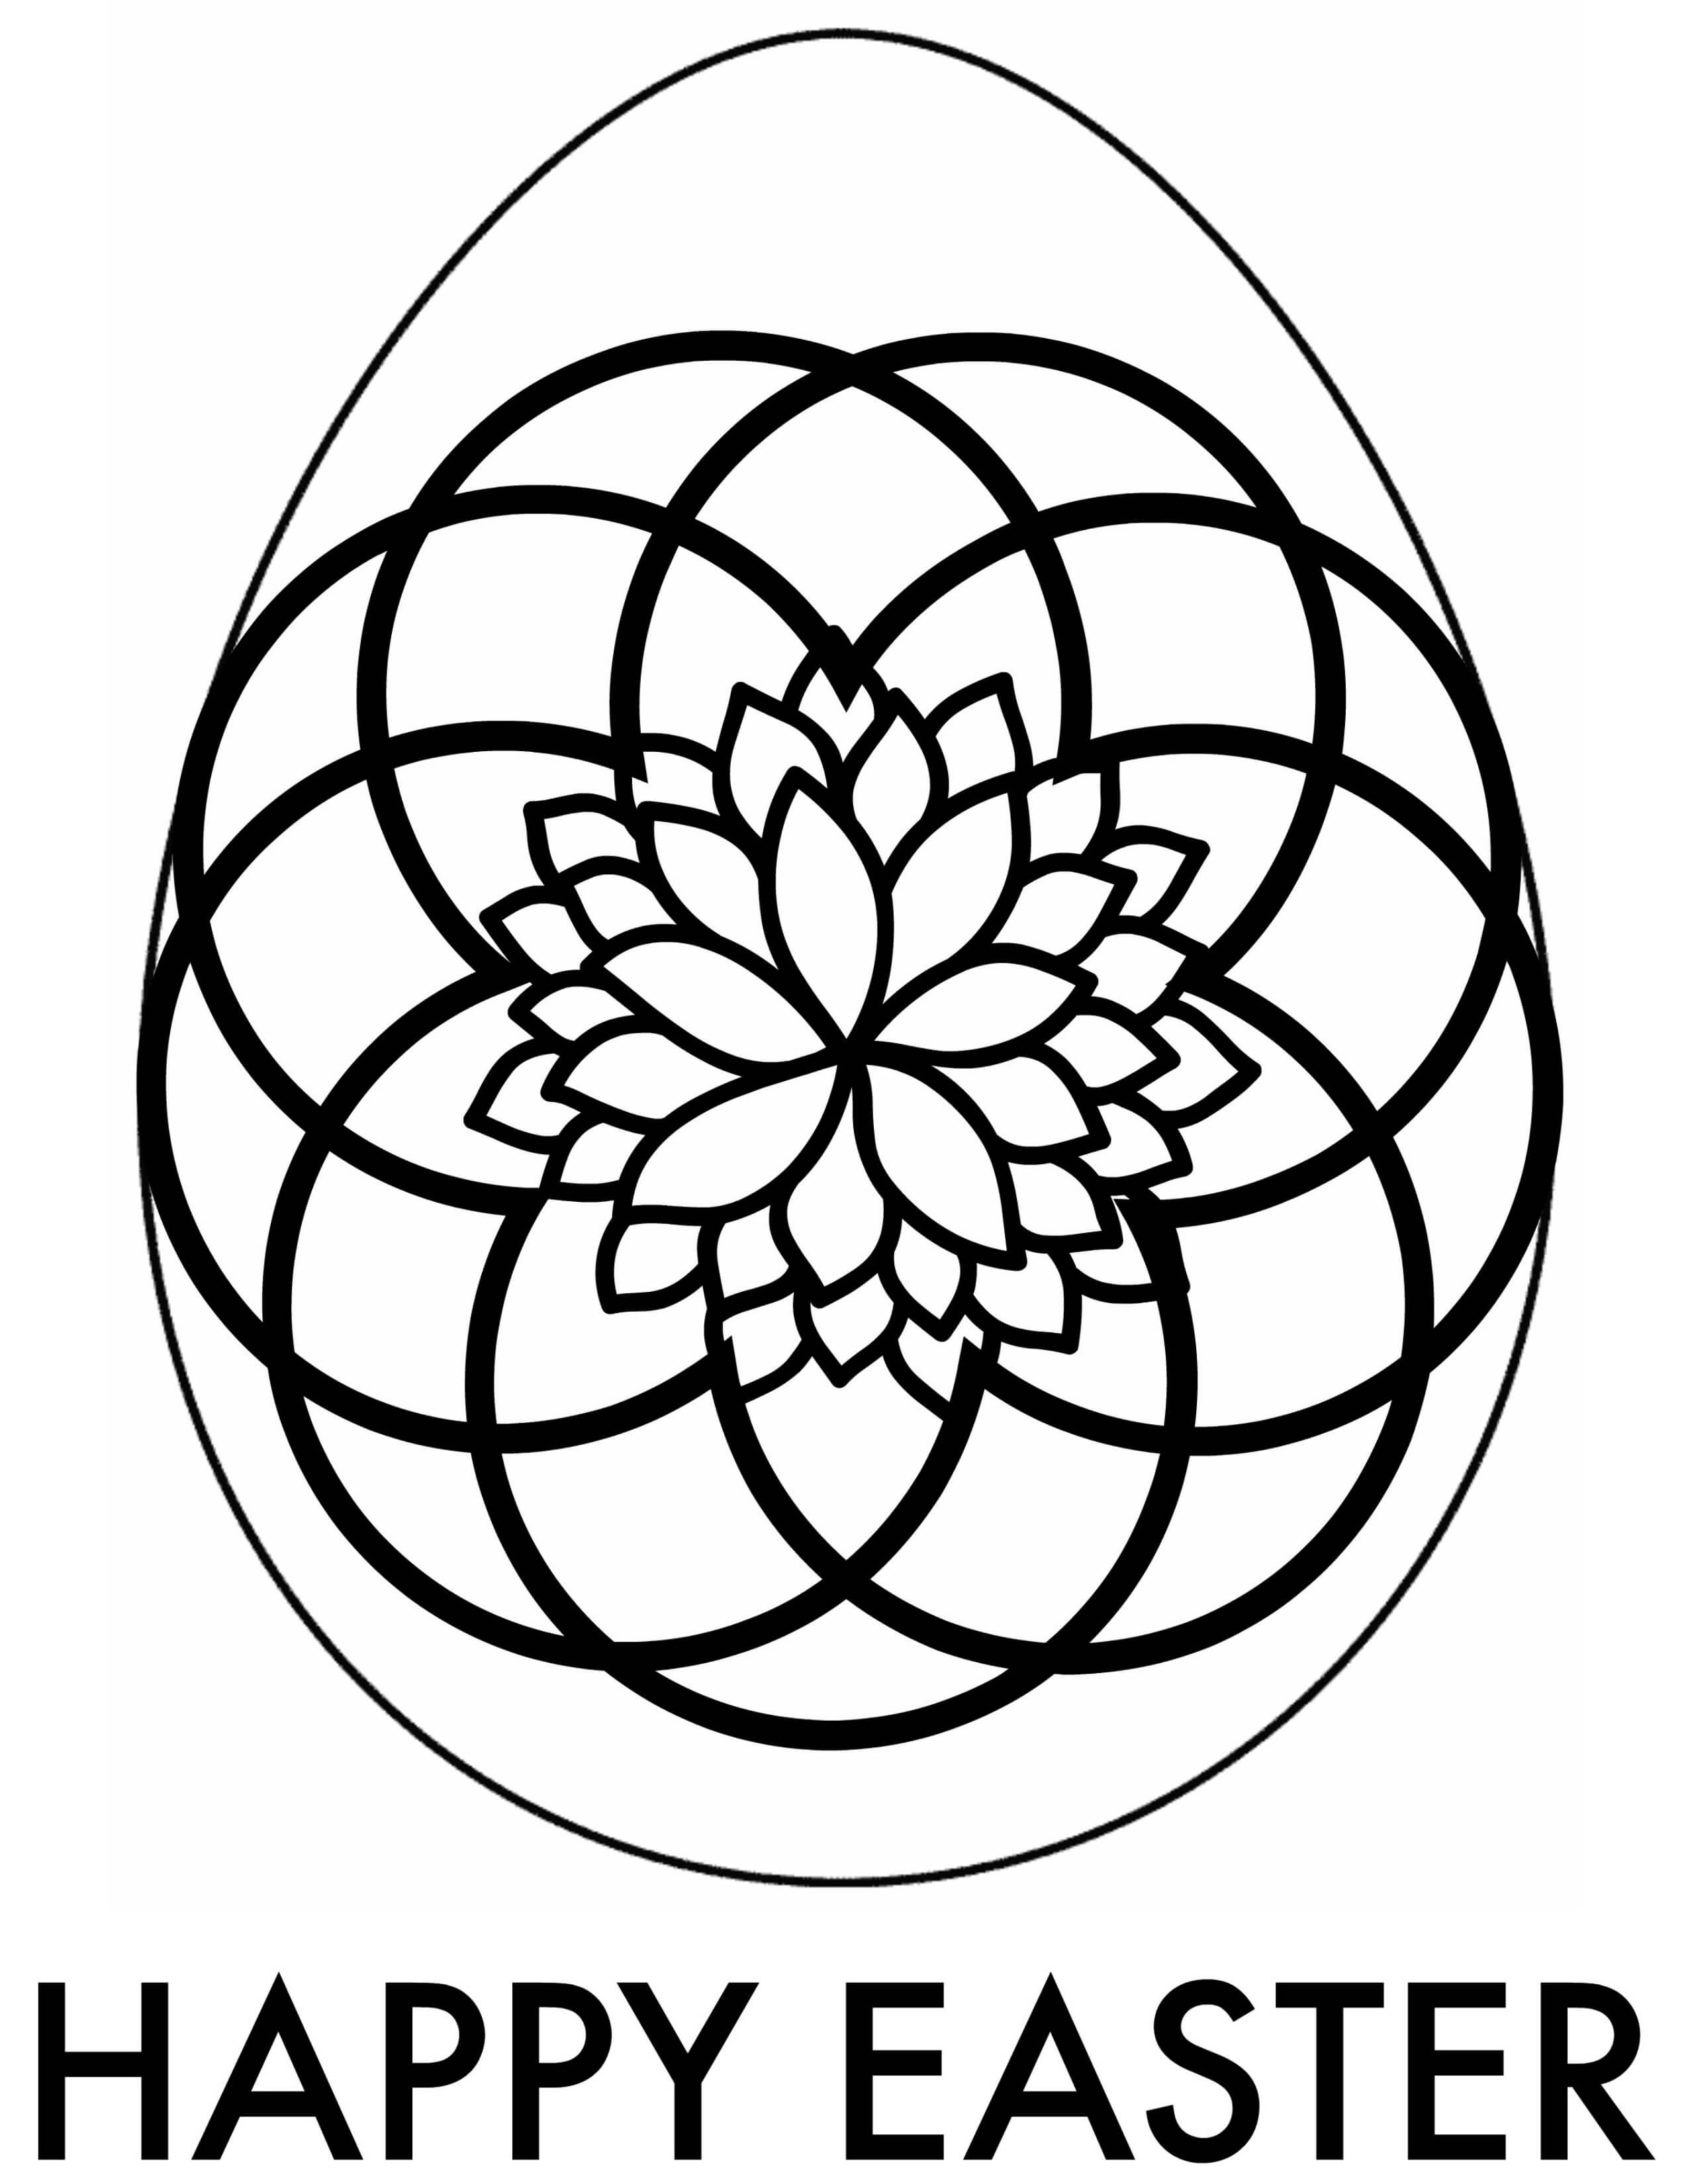 Easter Adult Coloring Pages   Free Printable Downloads   free printable easter egg coloring pages for adults